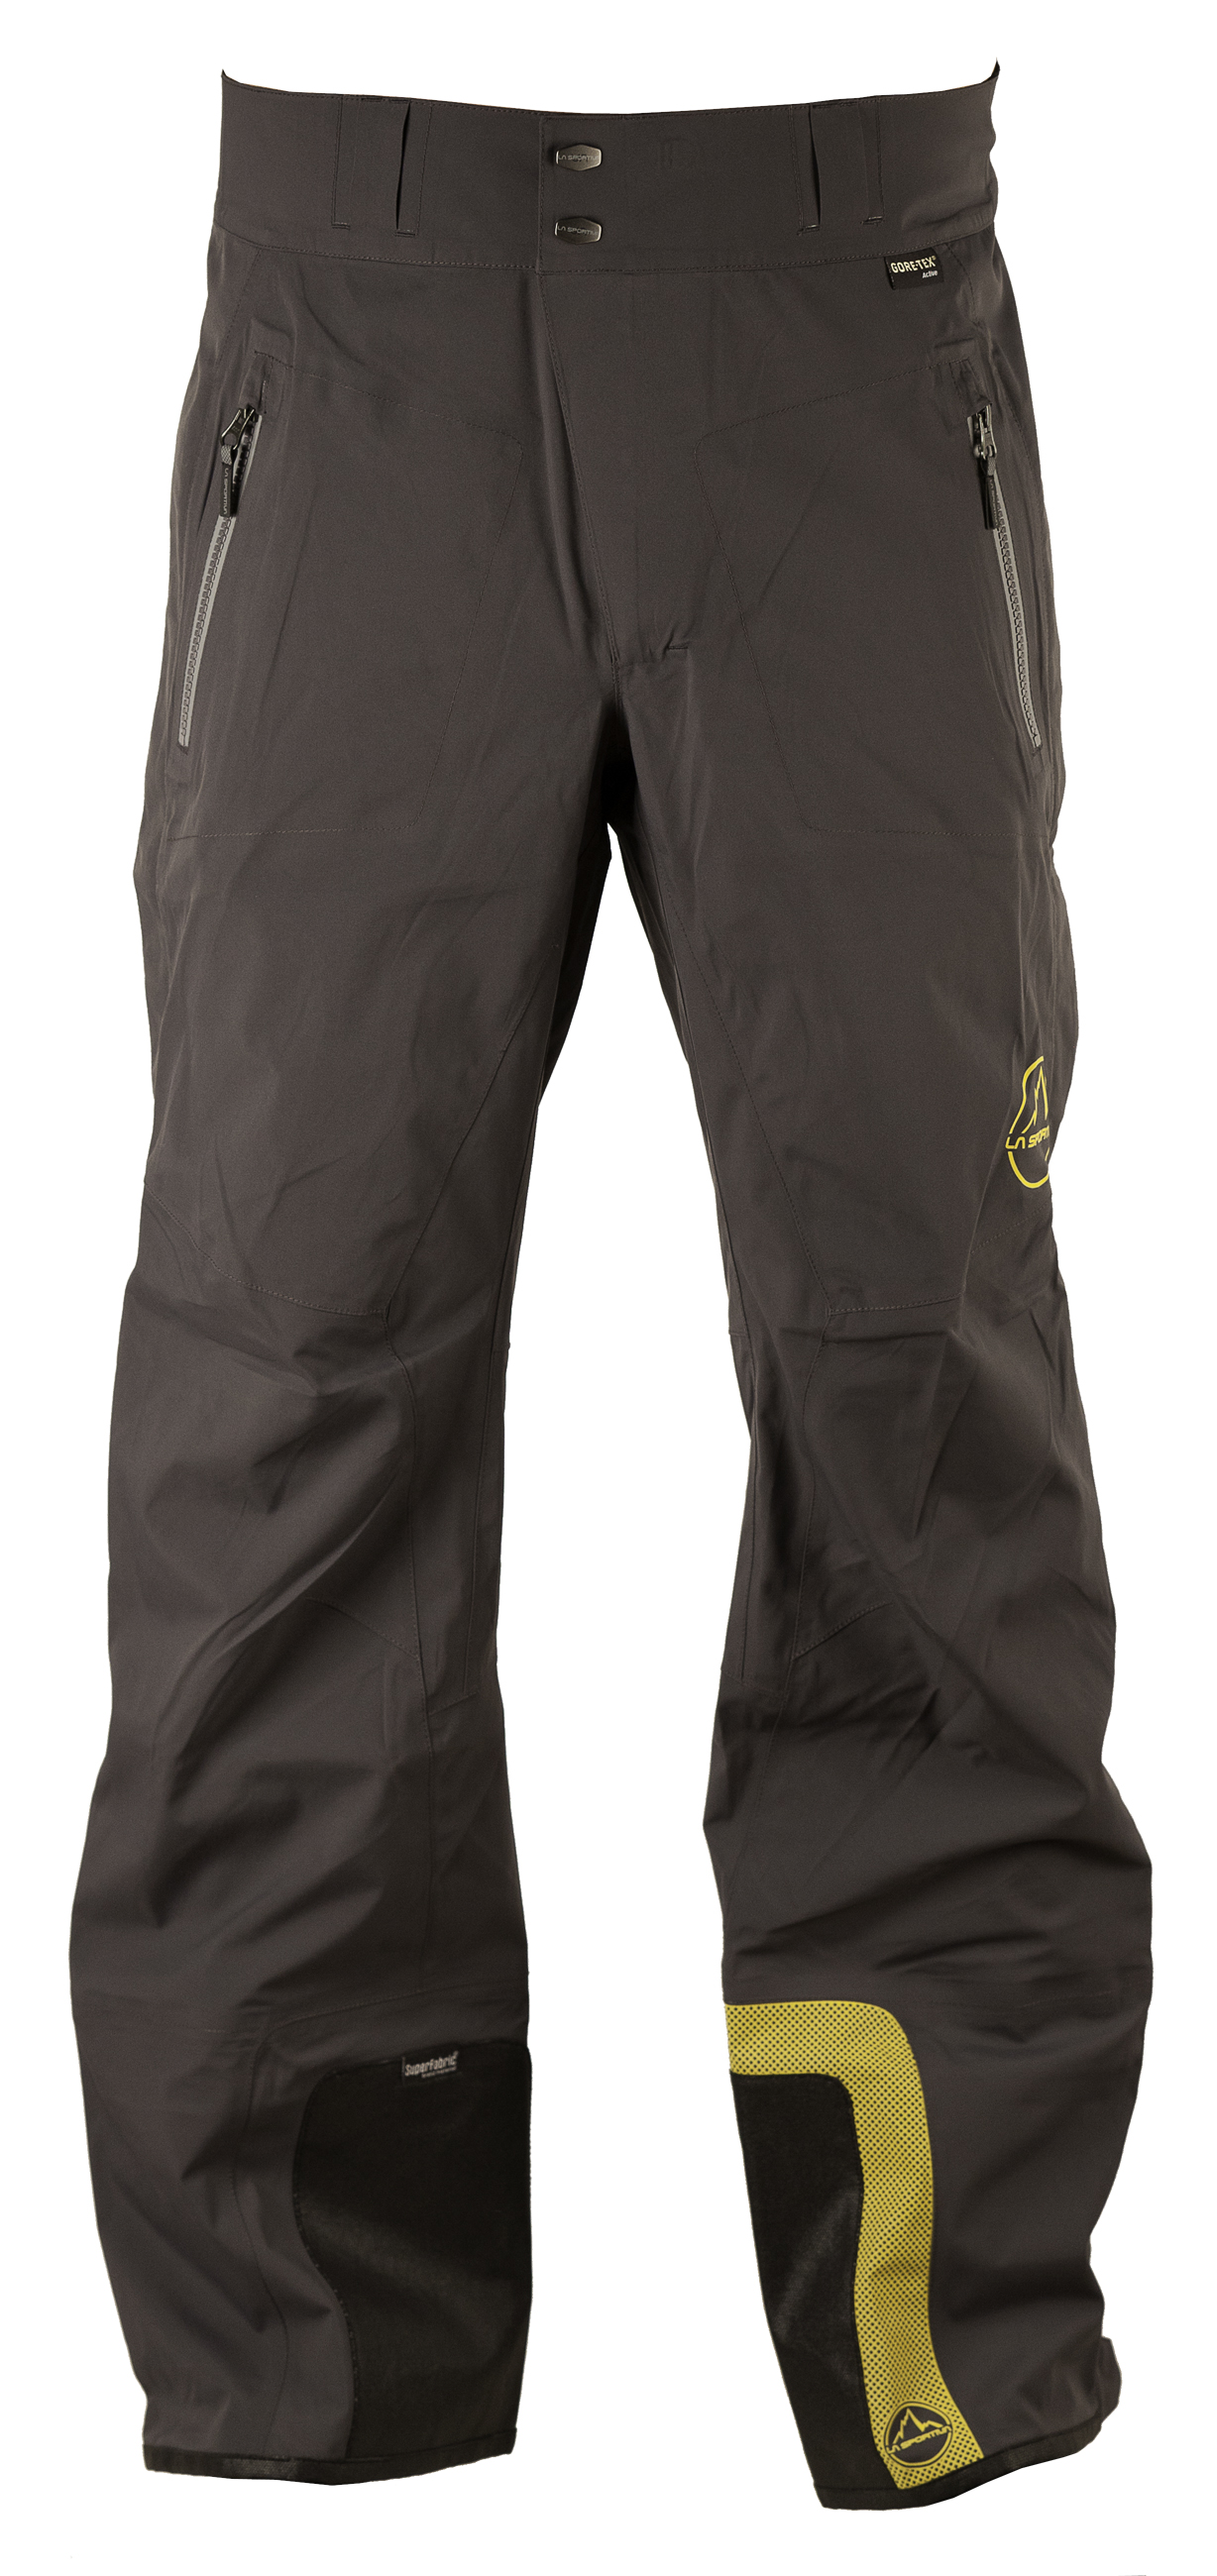 La Sportiva Storm Fighter Pants